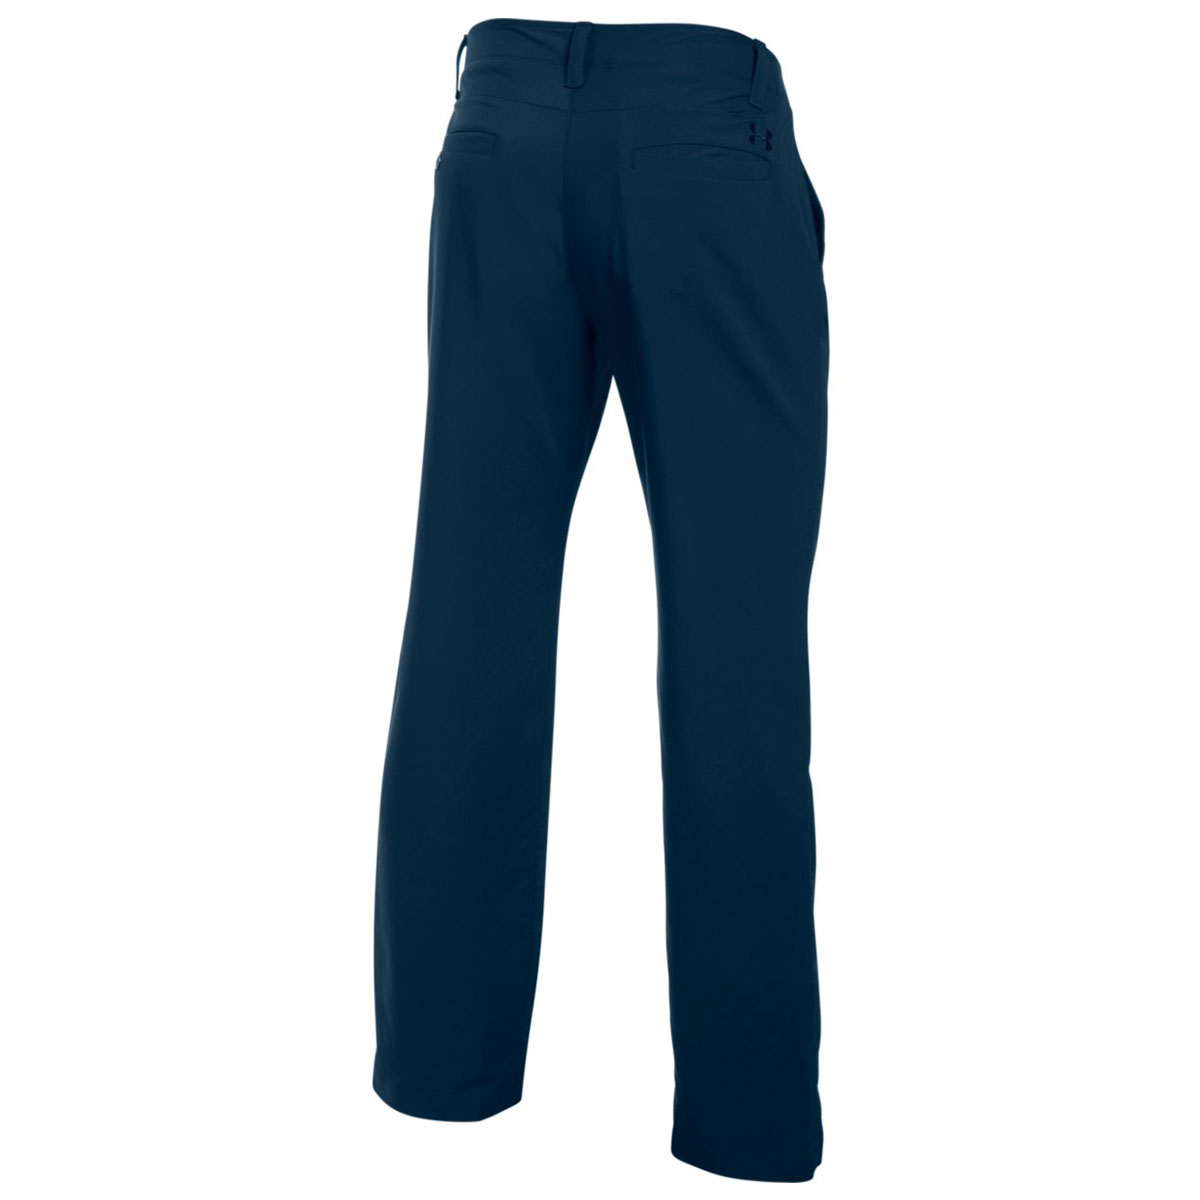 Under-Armour-Mens-UA-Matchplay-Pant-Soft-Stretch-Golf-Trousers-34-OFF-RRP miniatuur 8